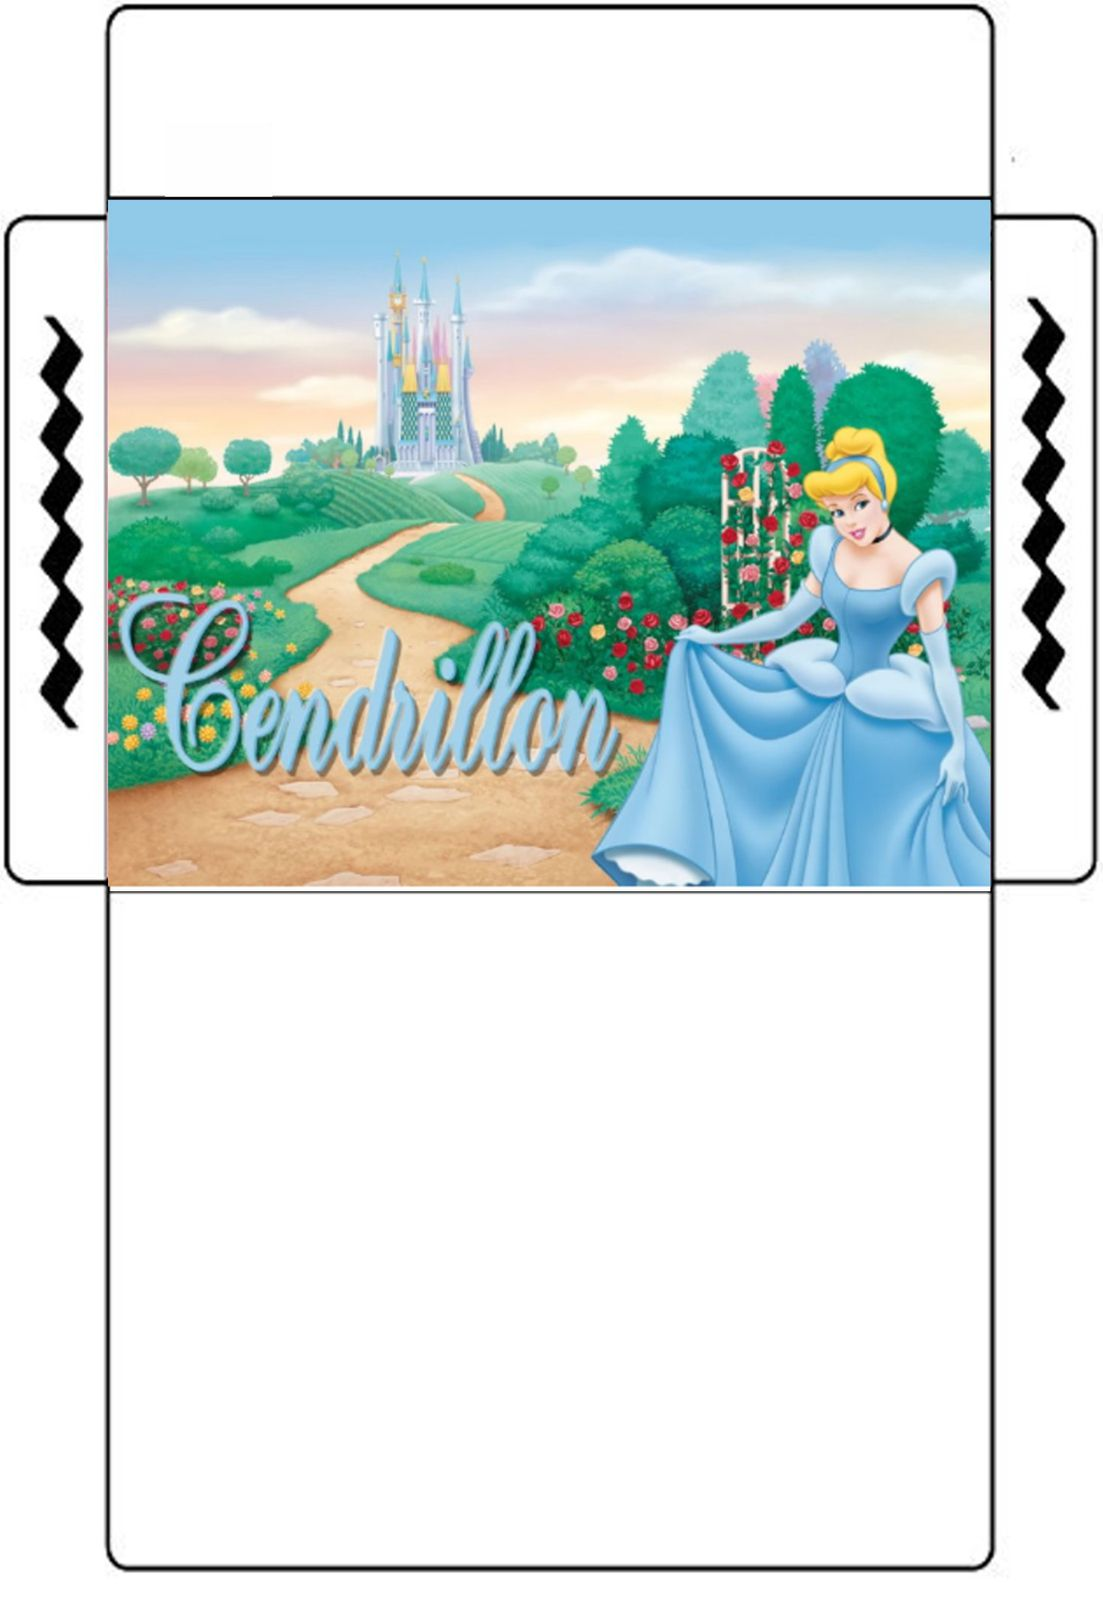 enveloppe princesse disney dora cendrillon carte petshop birthday figurine anniversaire recette. Black Bedroom Furniture Sets. Home Design Ideas